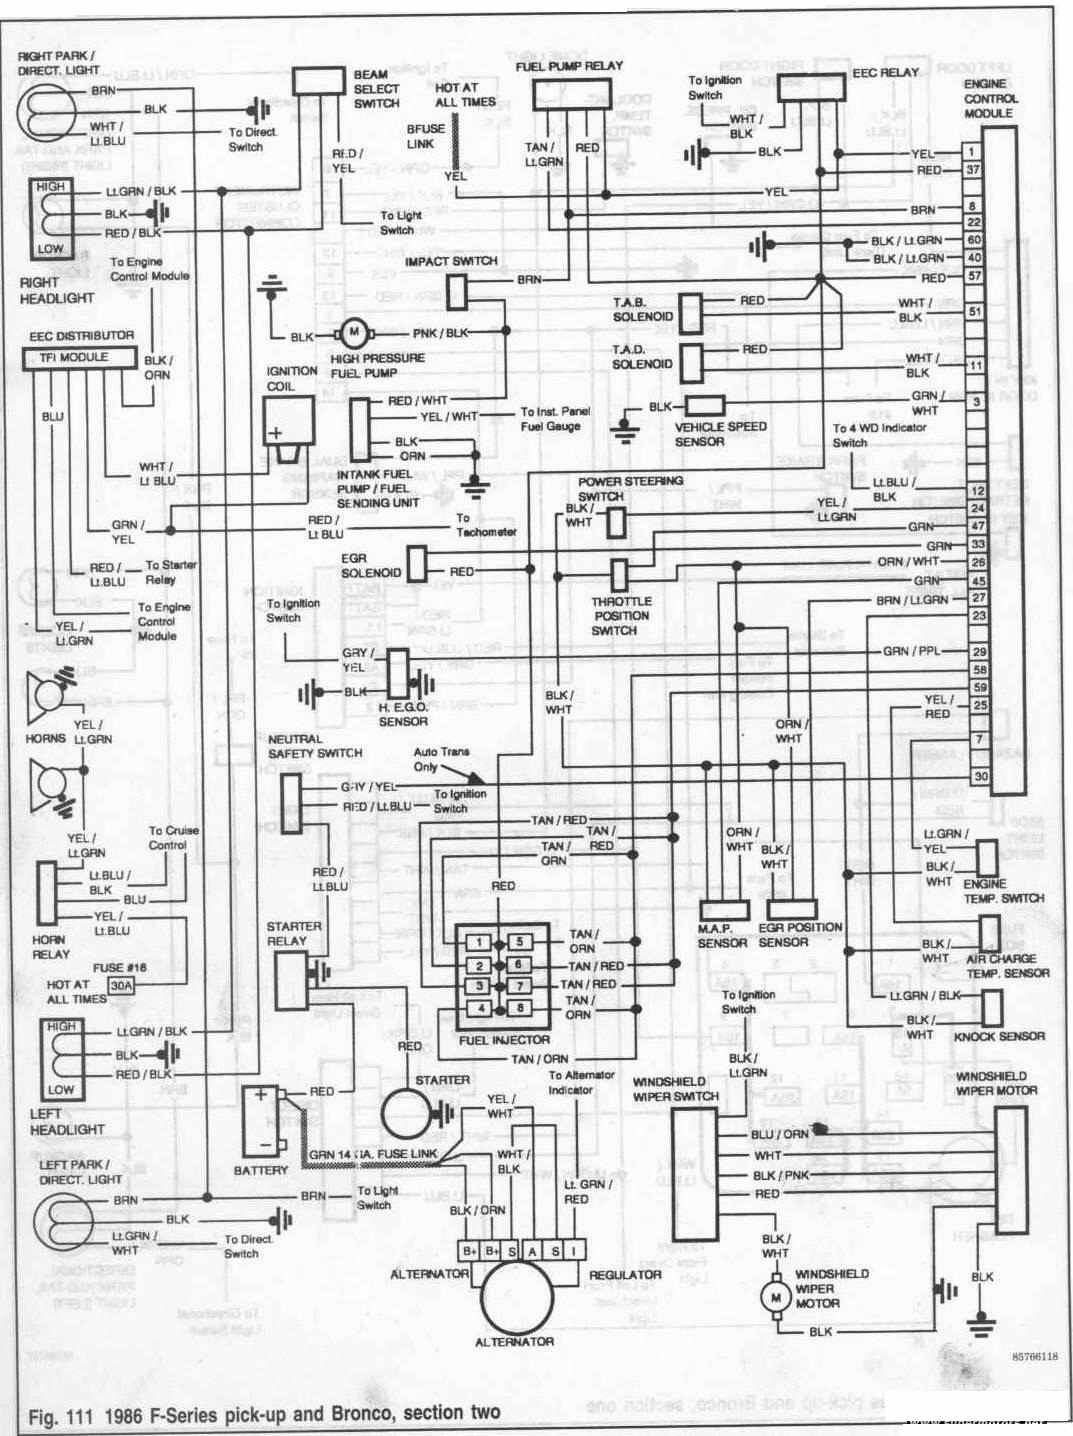 1966 Chevy Truck Ignition Switch Wiring Diagram, 1966